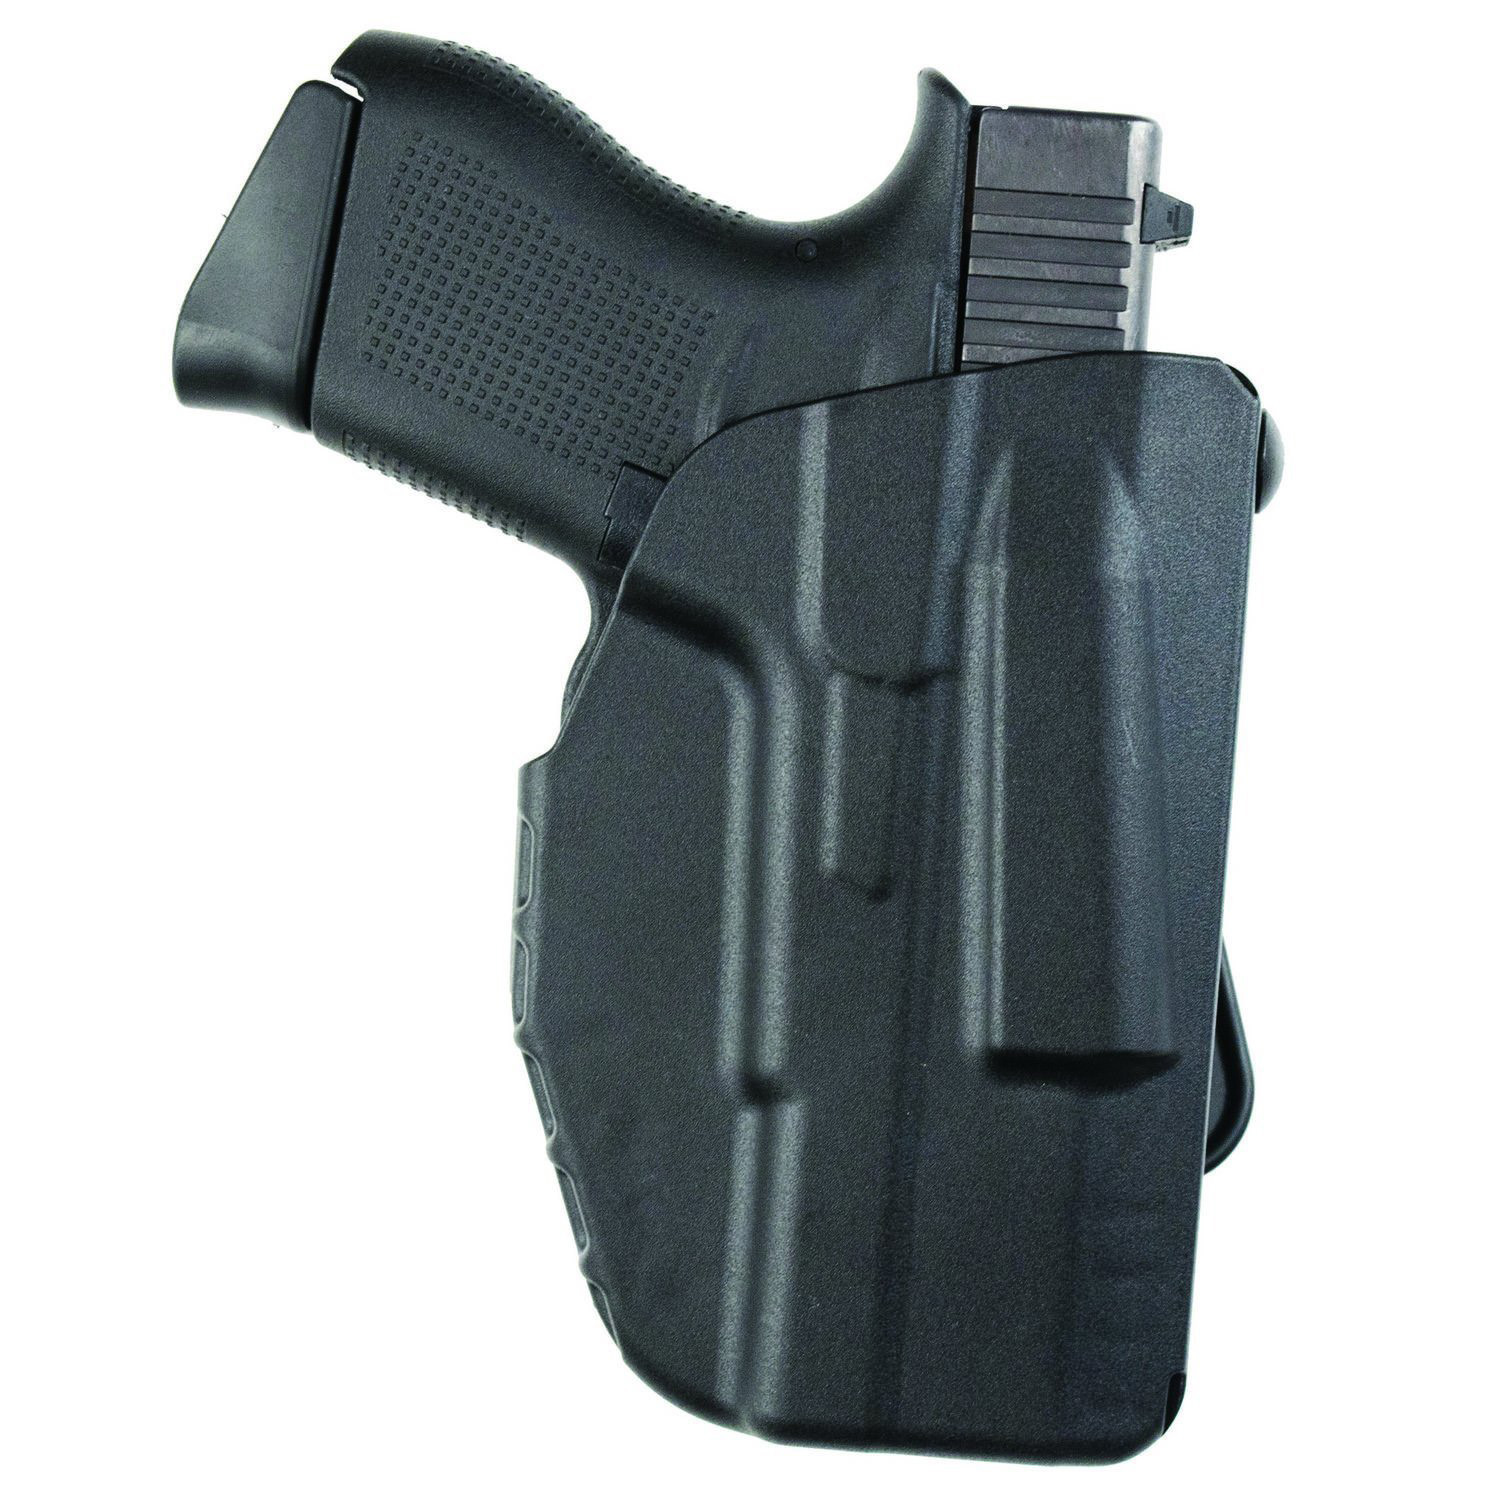 Safariland Model 7371 7TS ALS Open Top Concealment Paddle Holster, M & P Shield